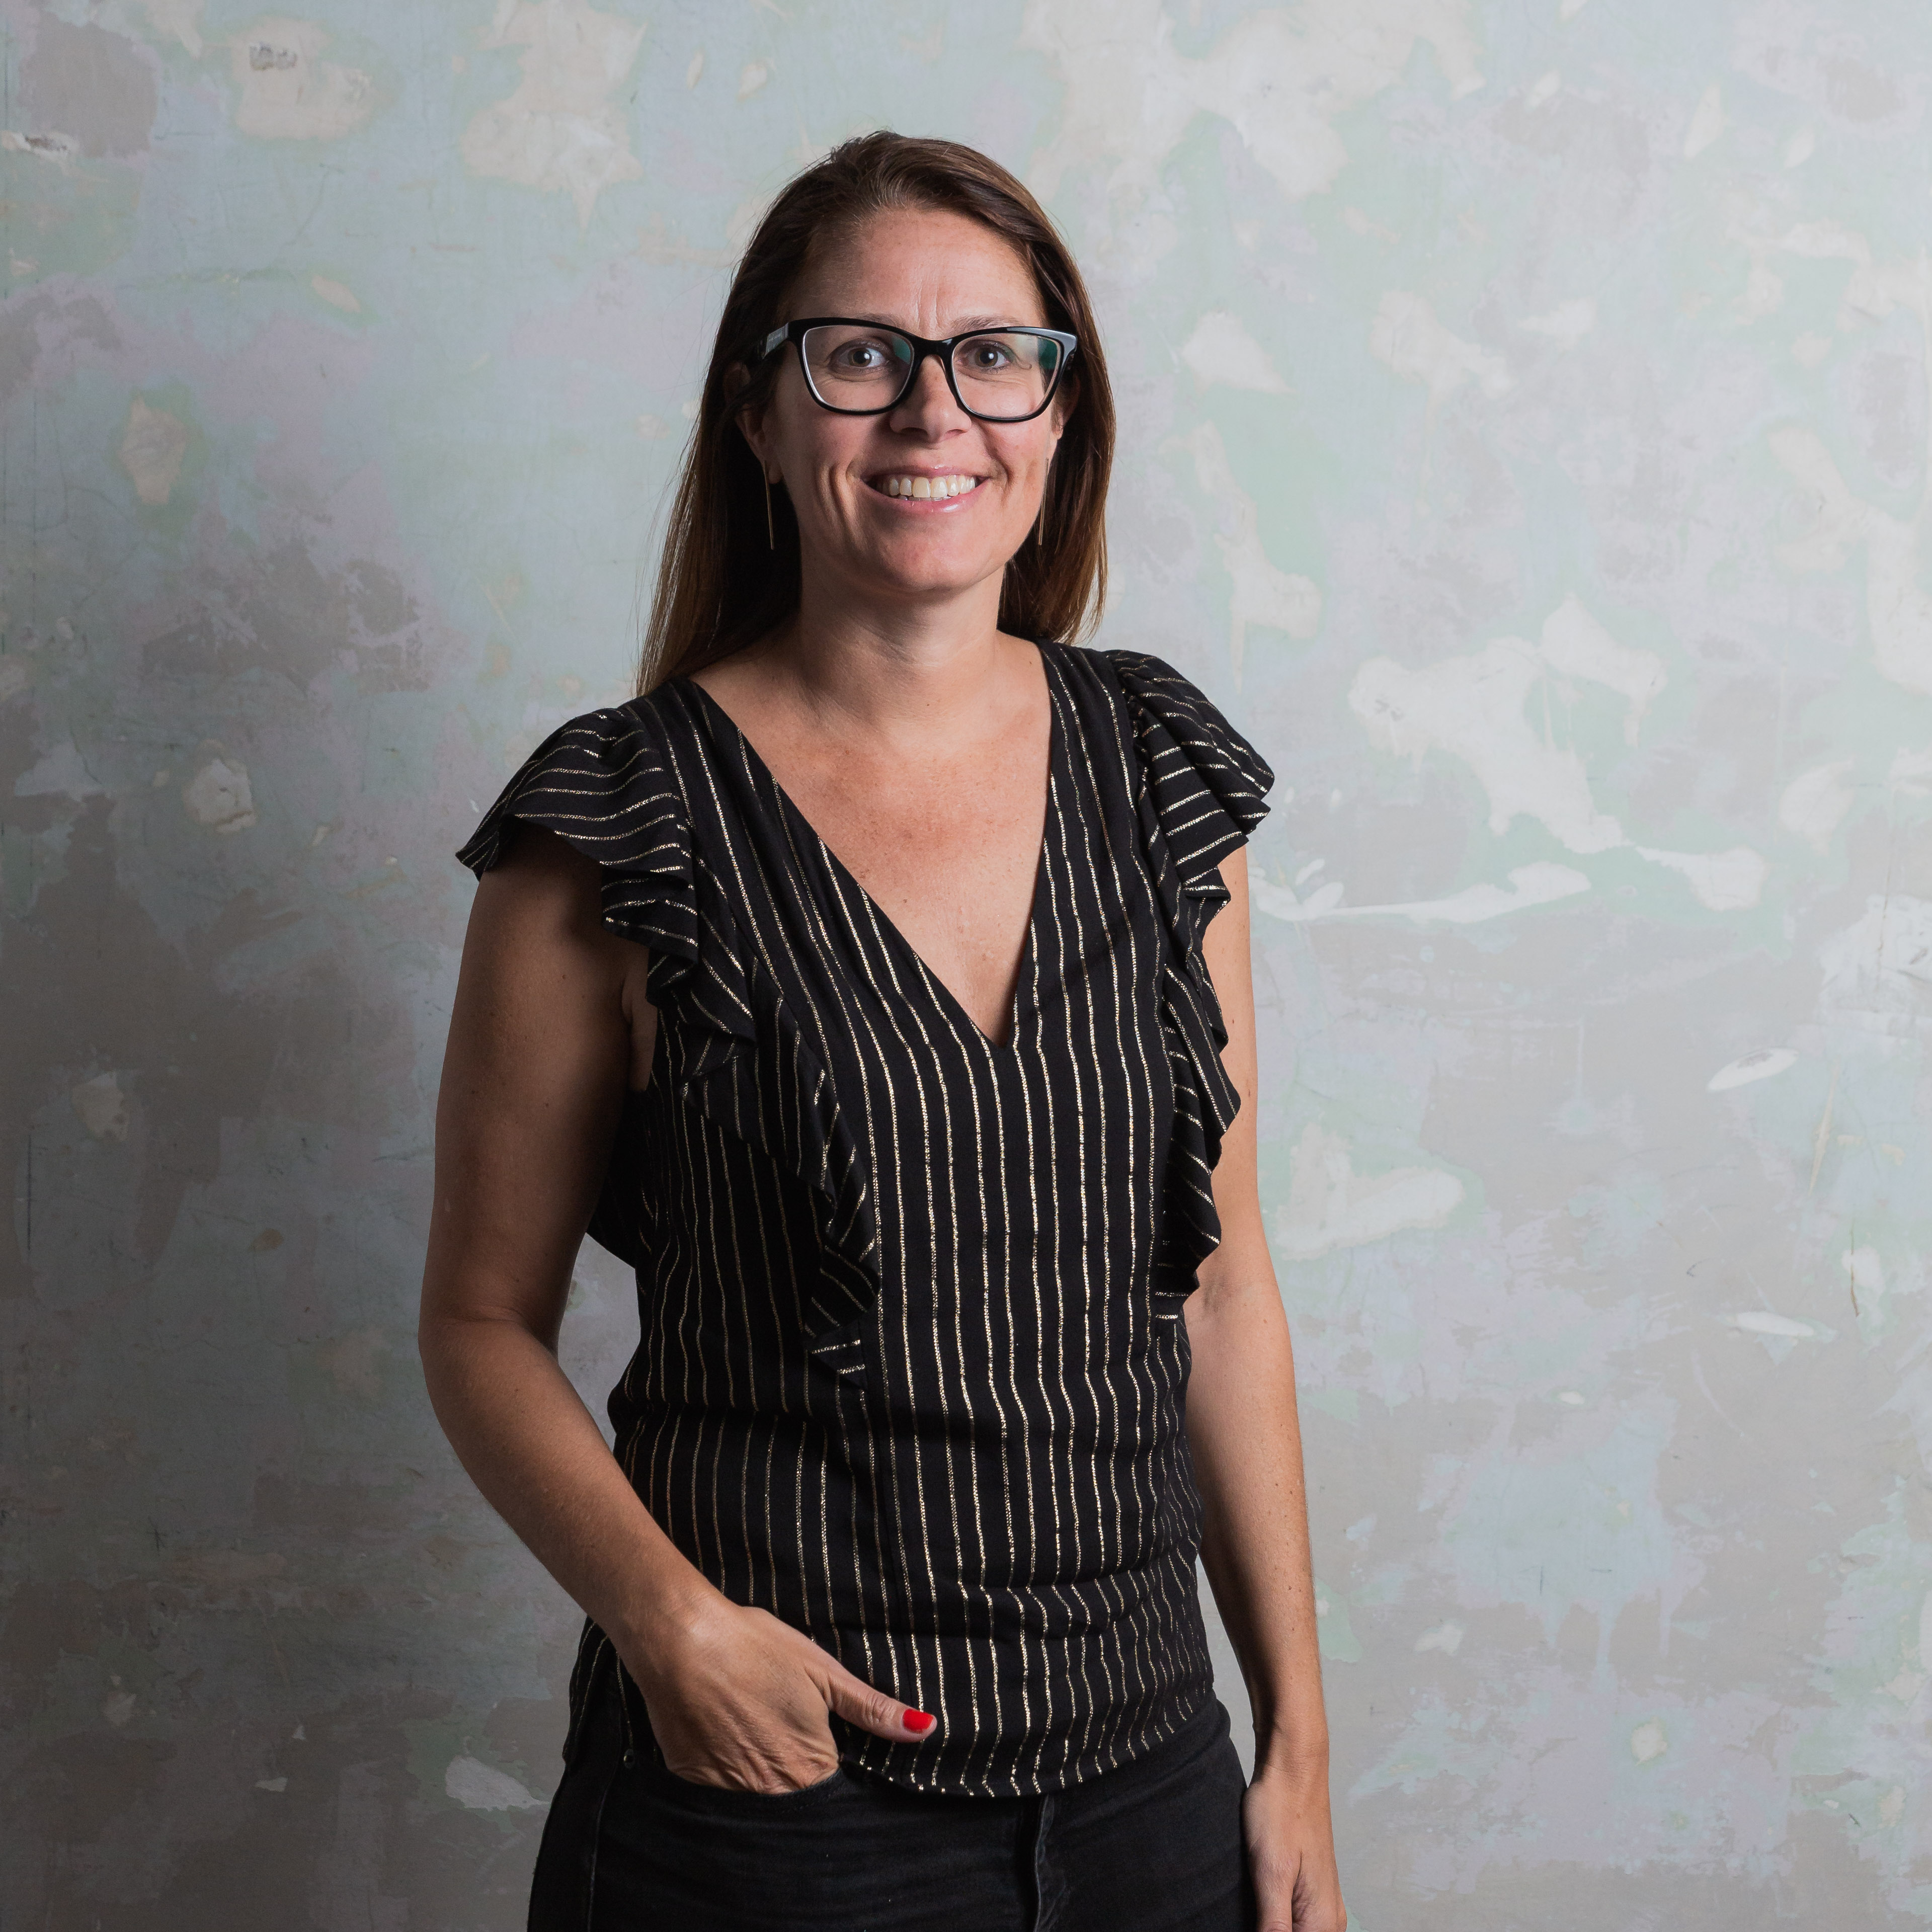 Independent agency BEST. appoints Nicole Honig to the role of client experience director